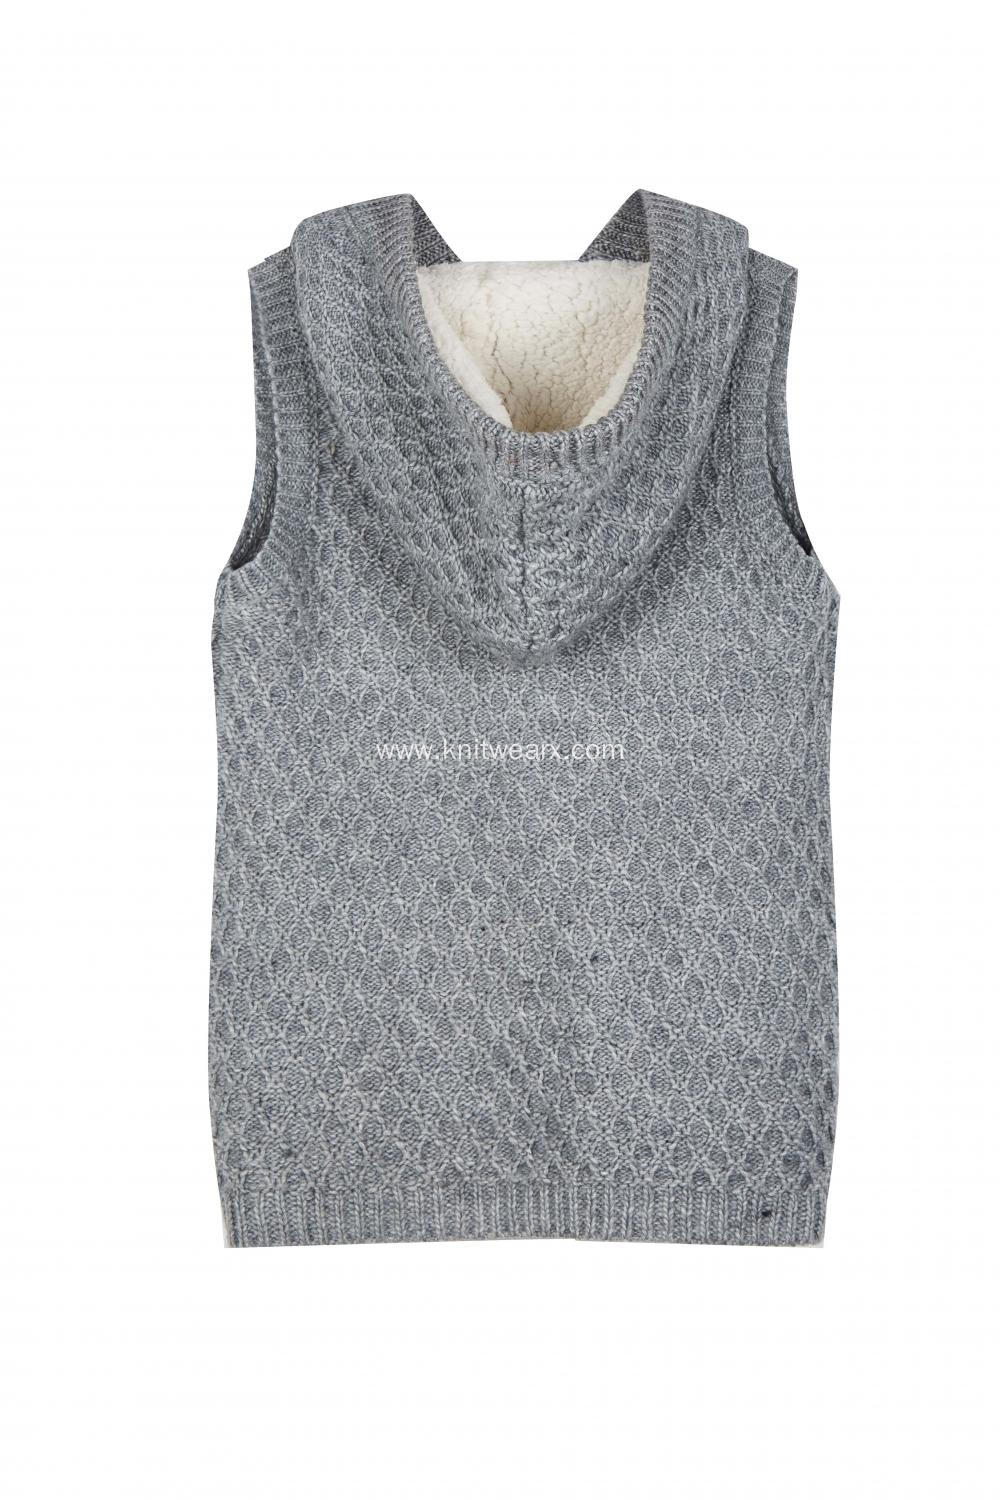 Women's Knitted Button Lined Hoodie Pocket Vest Cardigan